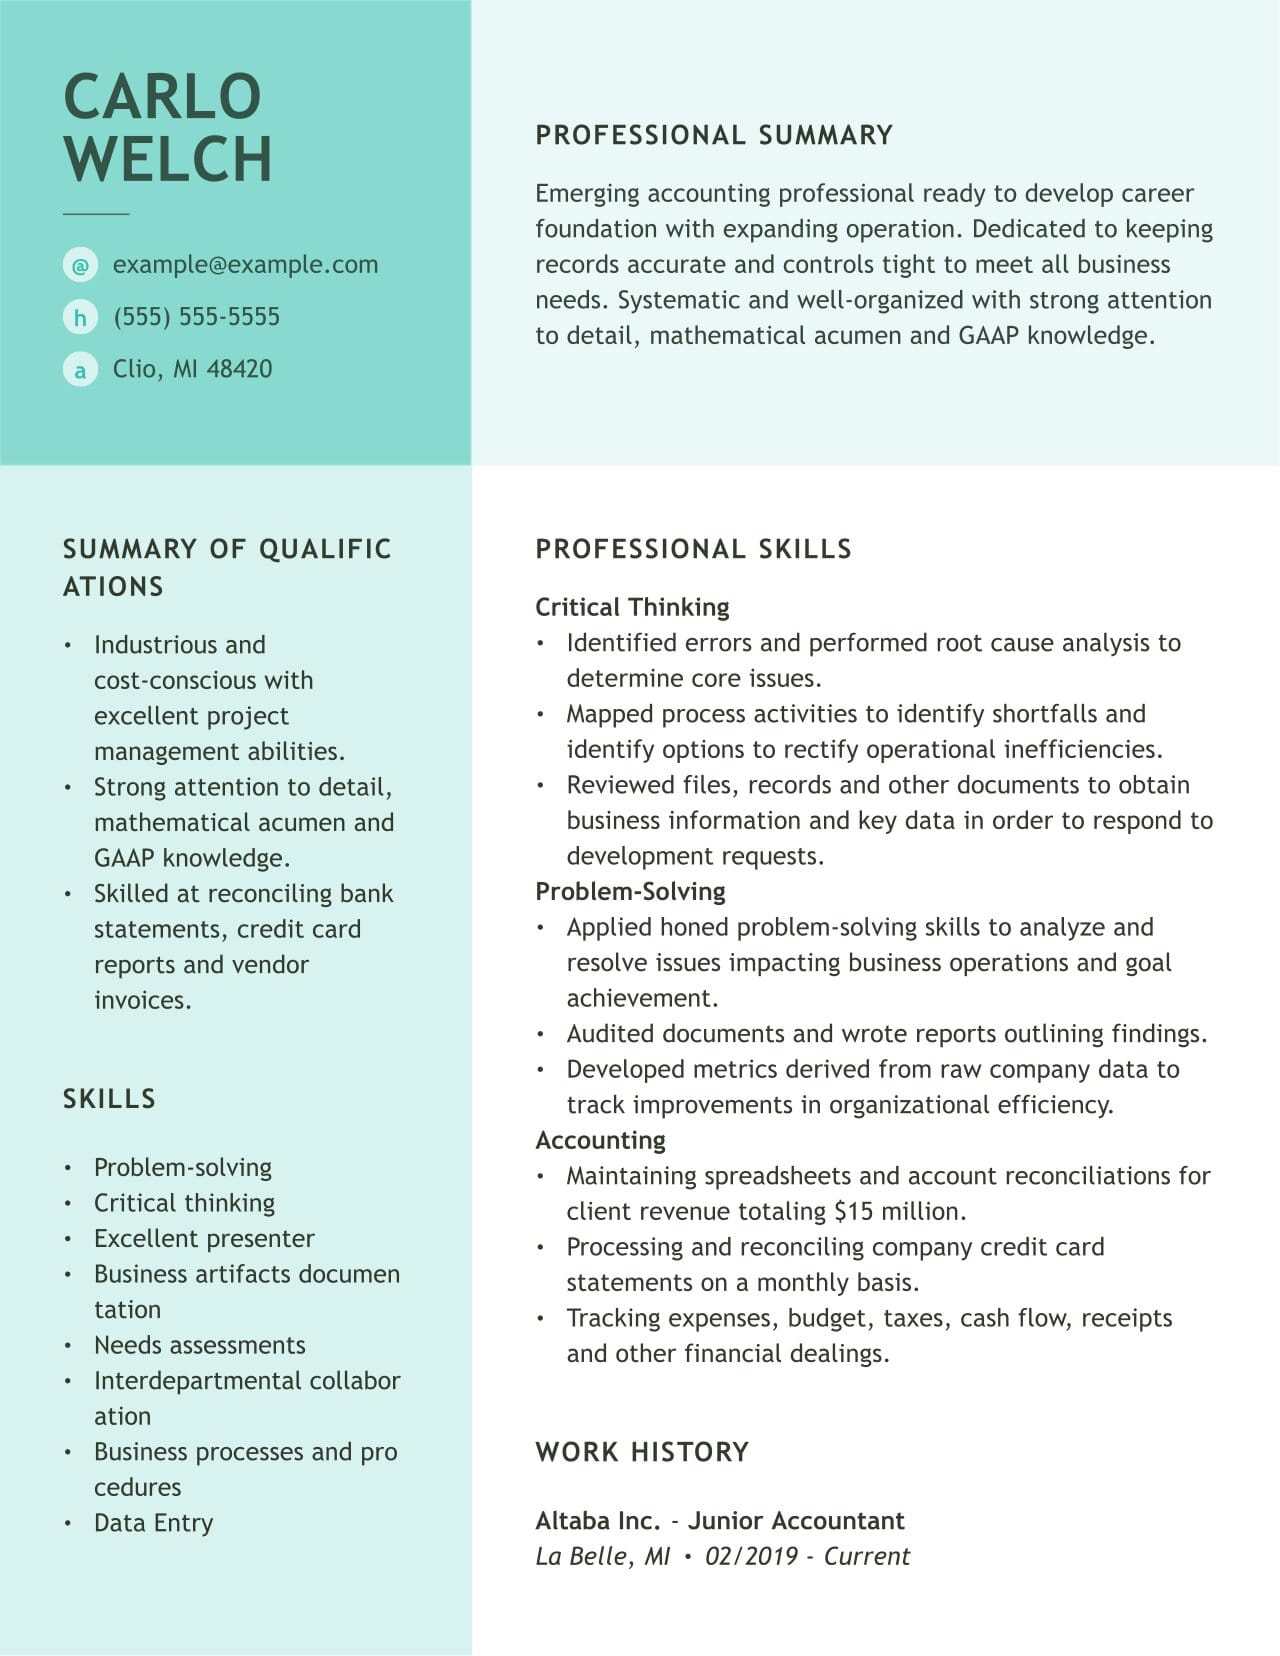 accounting resume examples and guides myperfectresume knowledge skills abilities sample Resume Knowledge Skills And Abilities Resume Sample